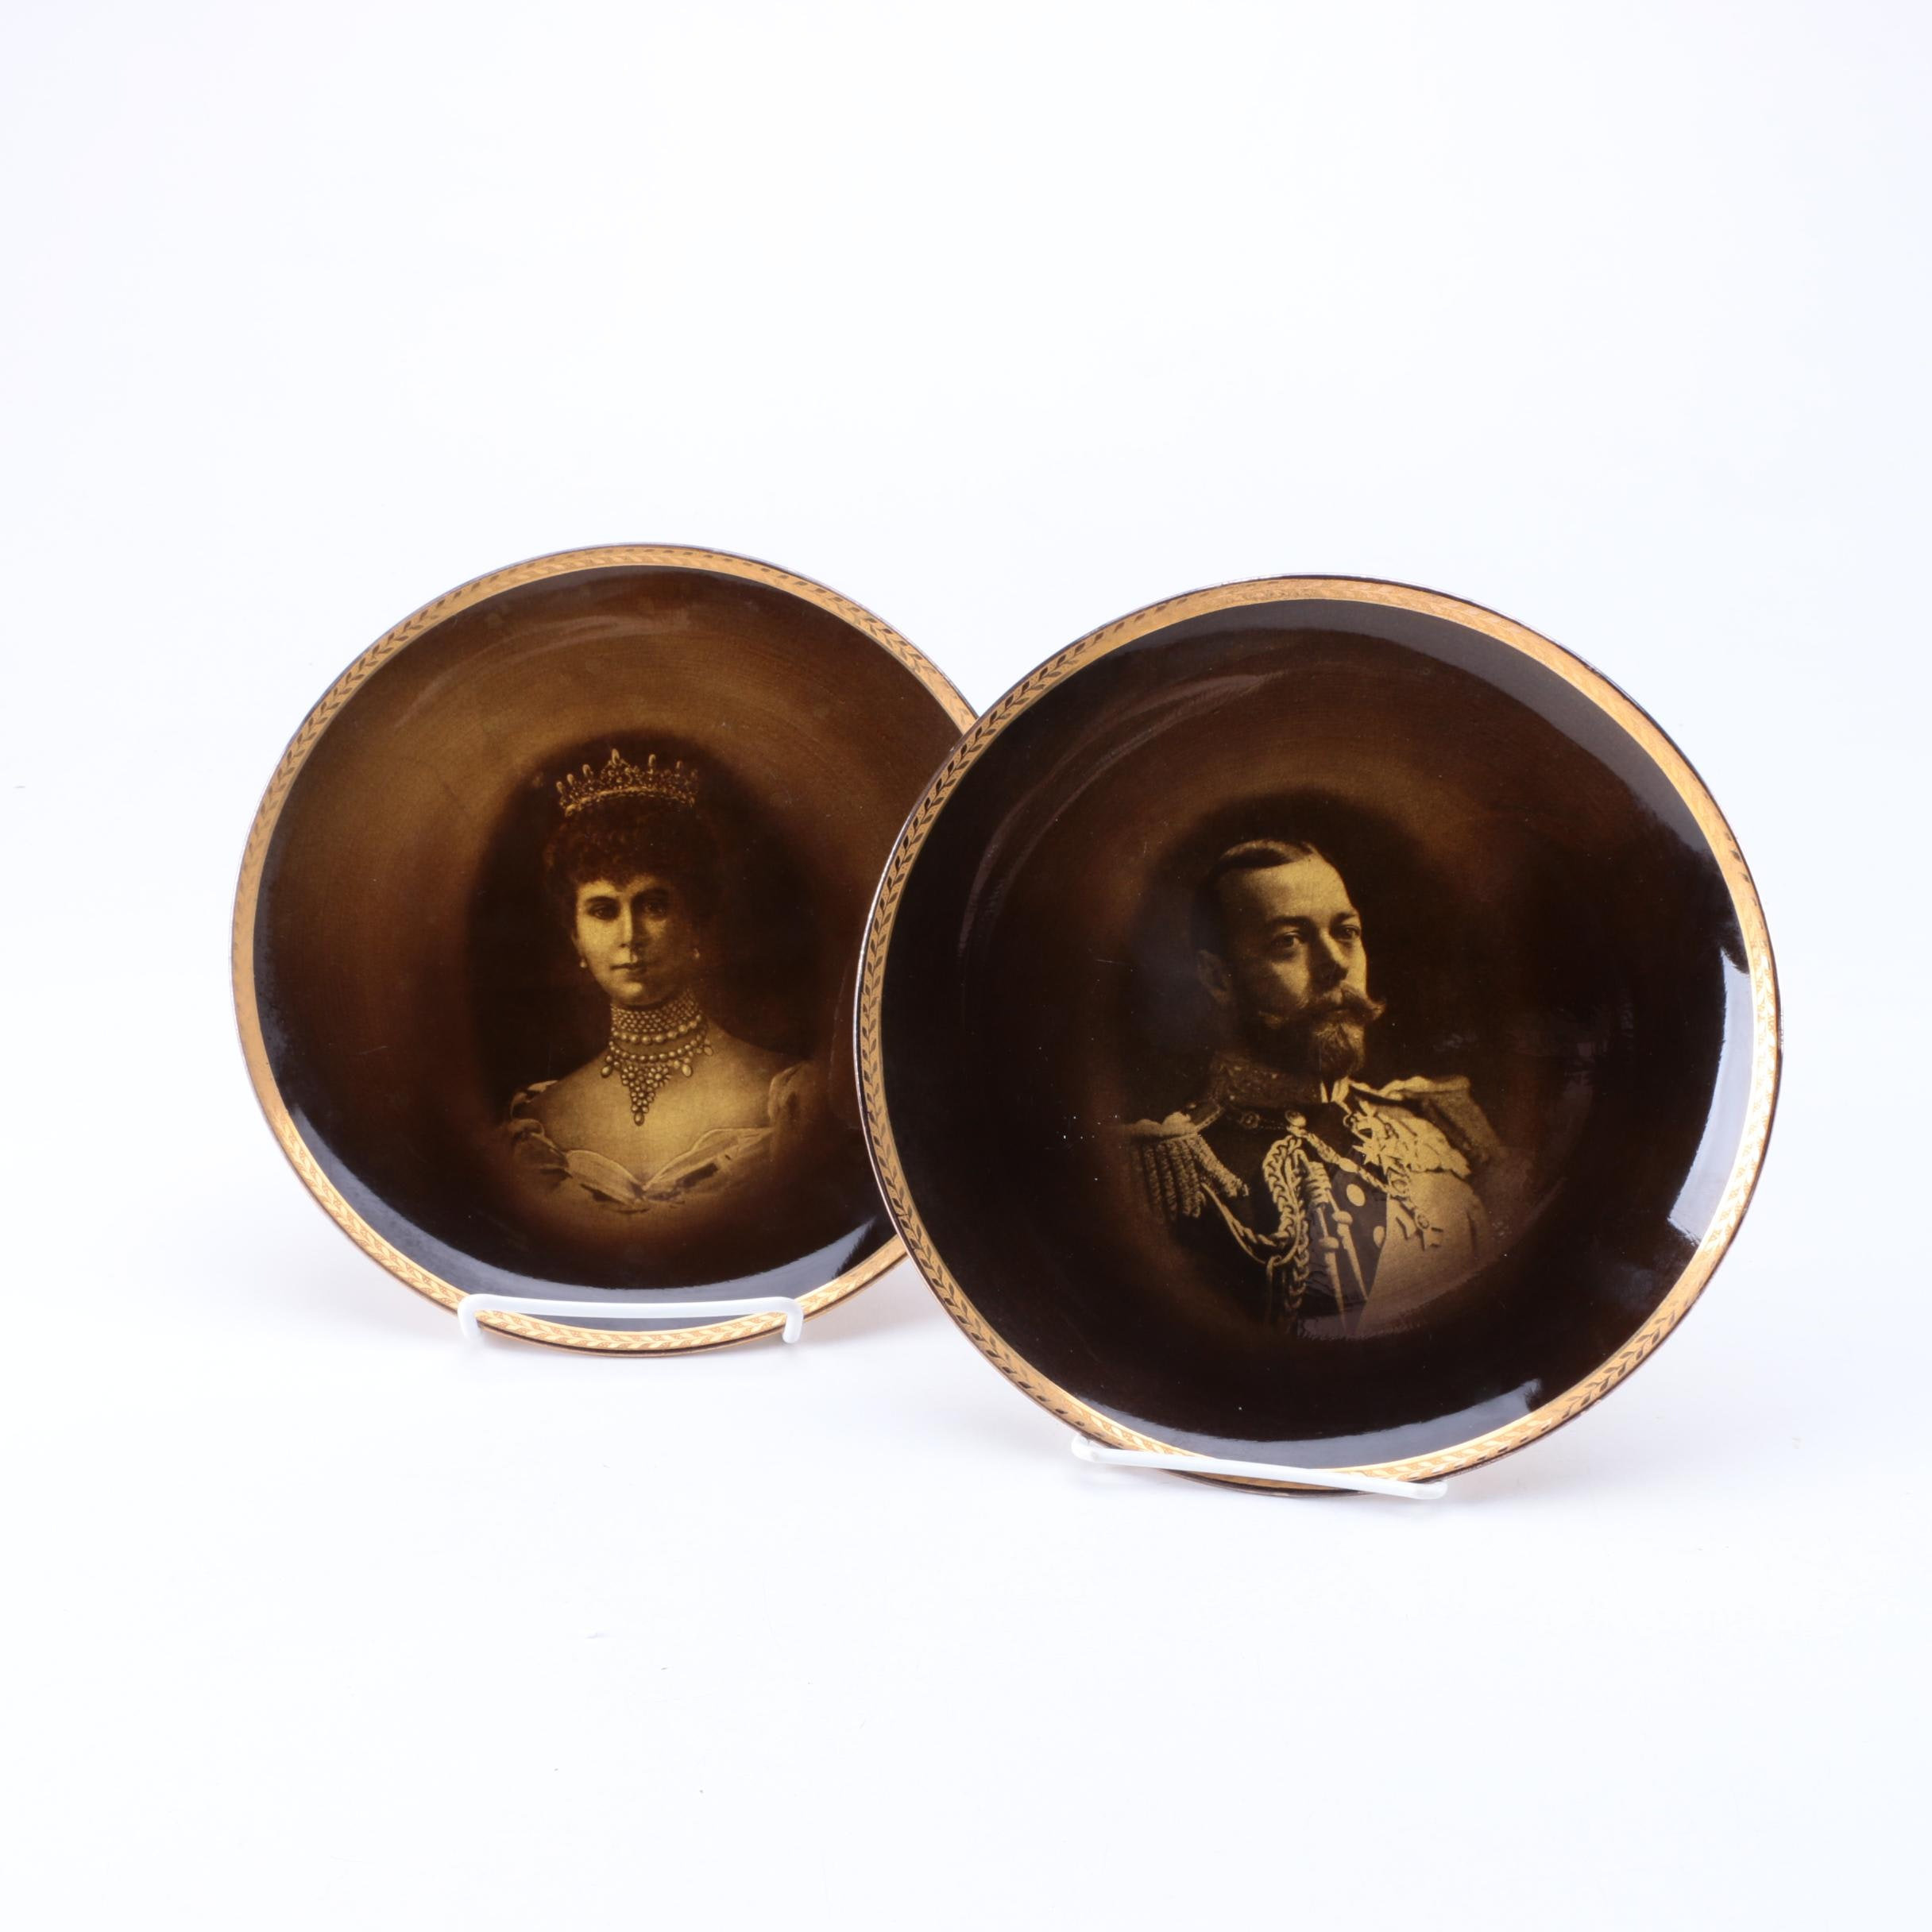 Antique George V and Mary of Teck Commemorative Plates